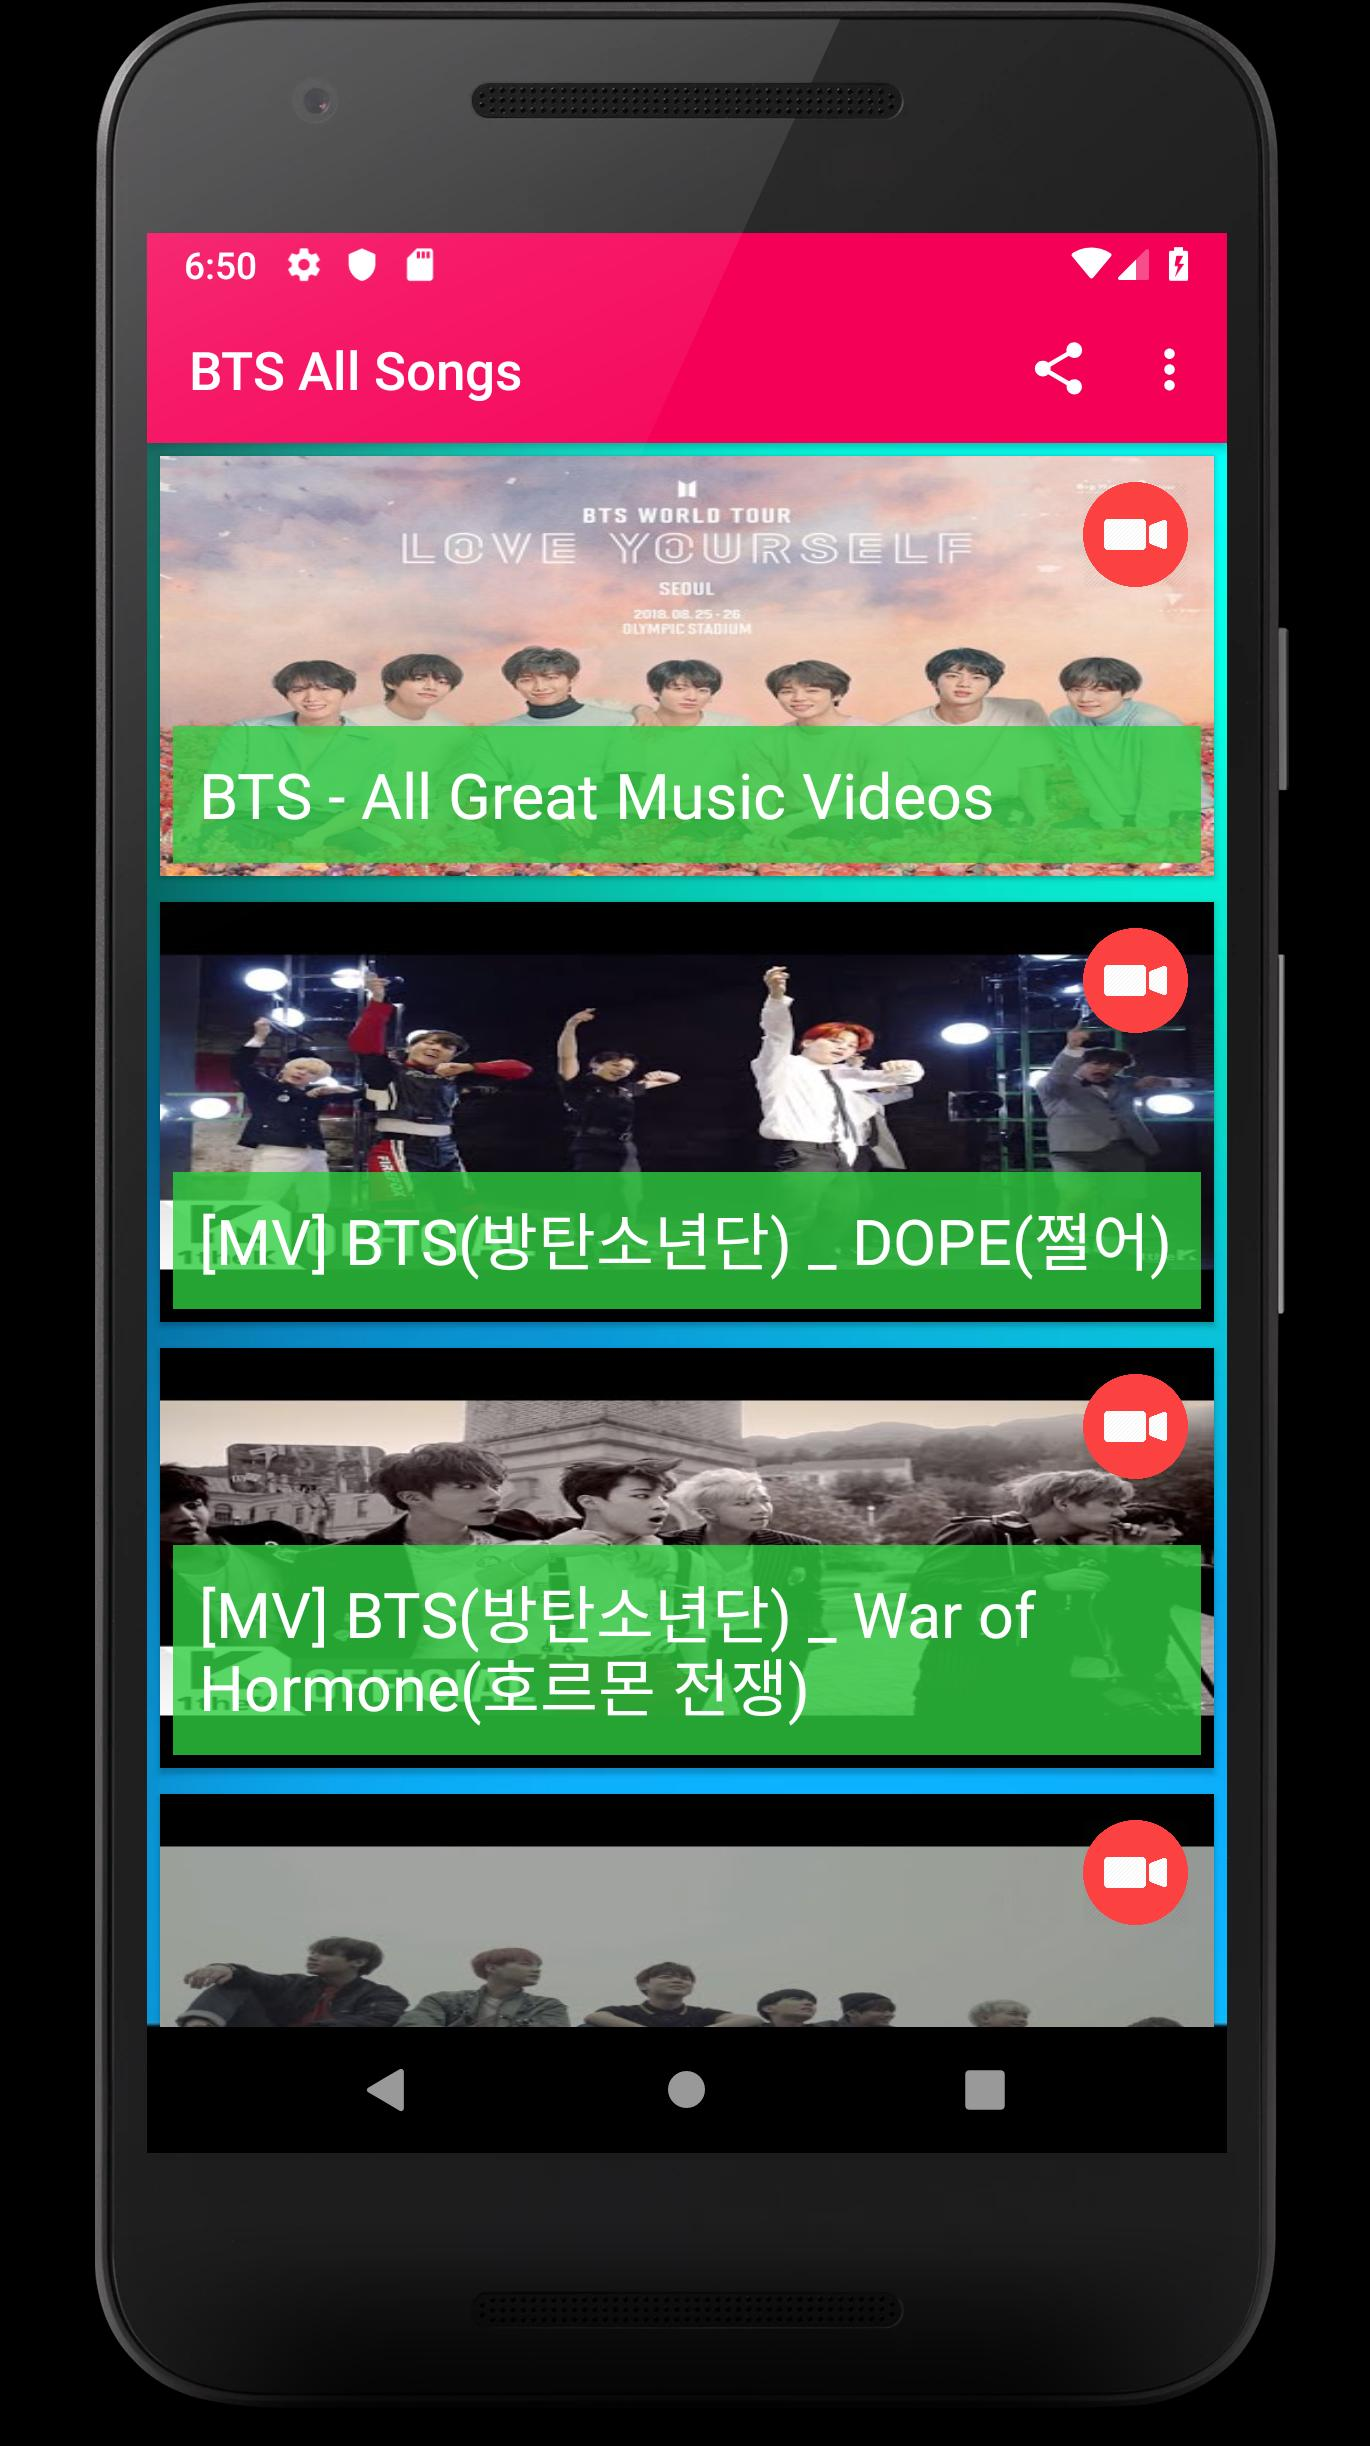 BTS All Music Video 2019 for Android - APK Download